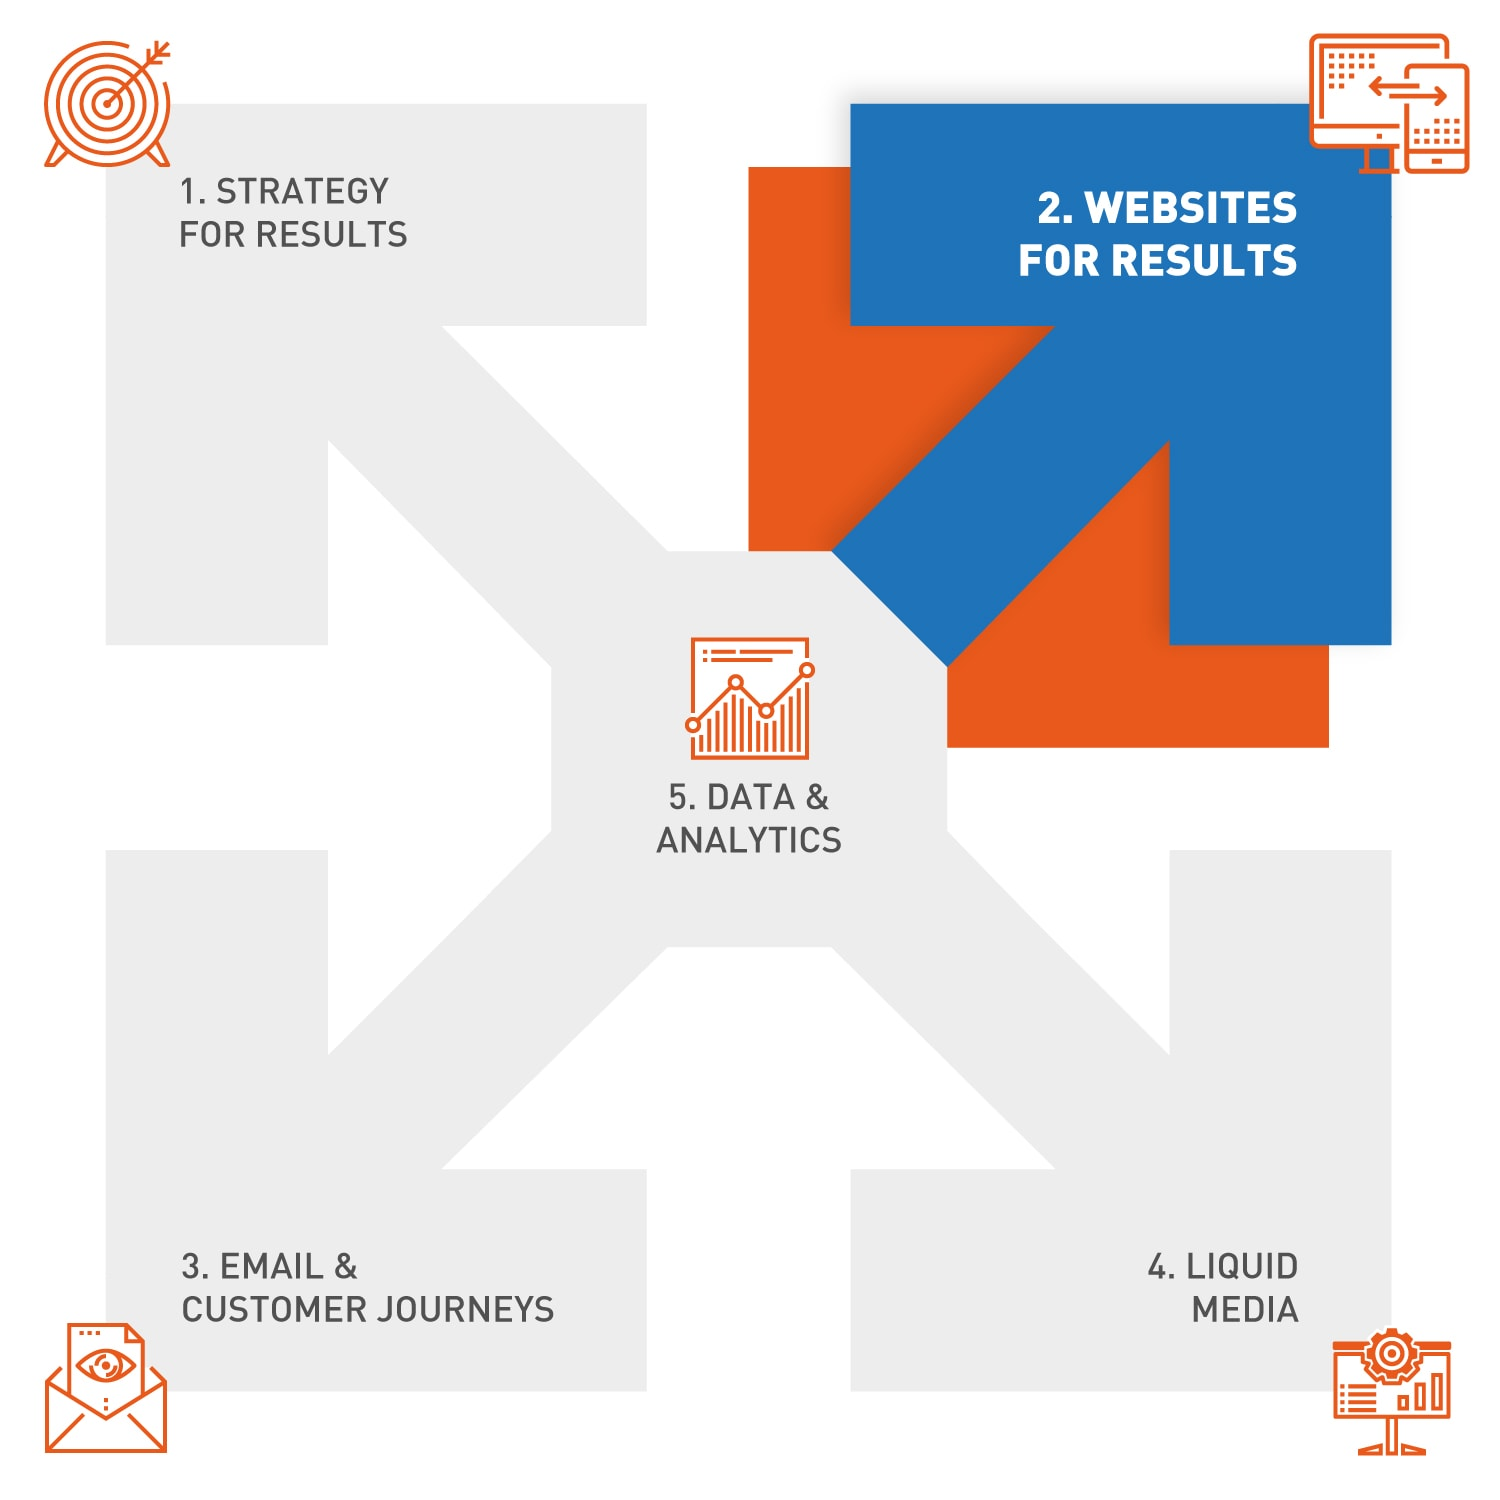 websites-for-results